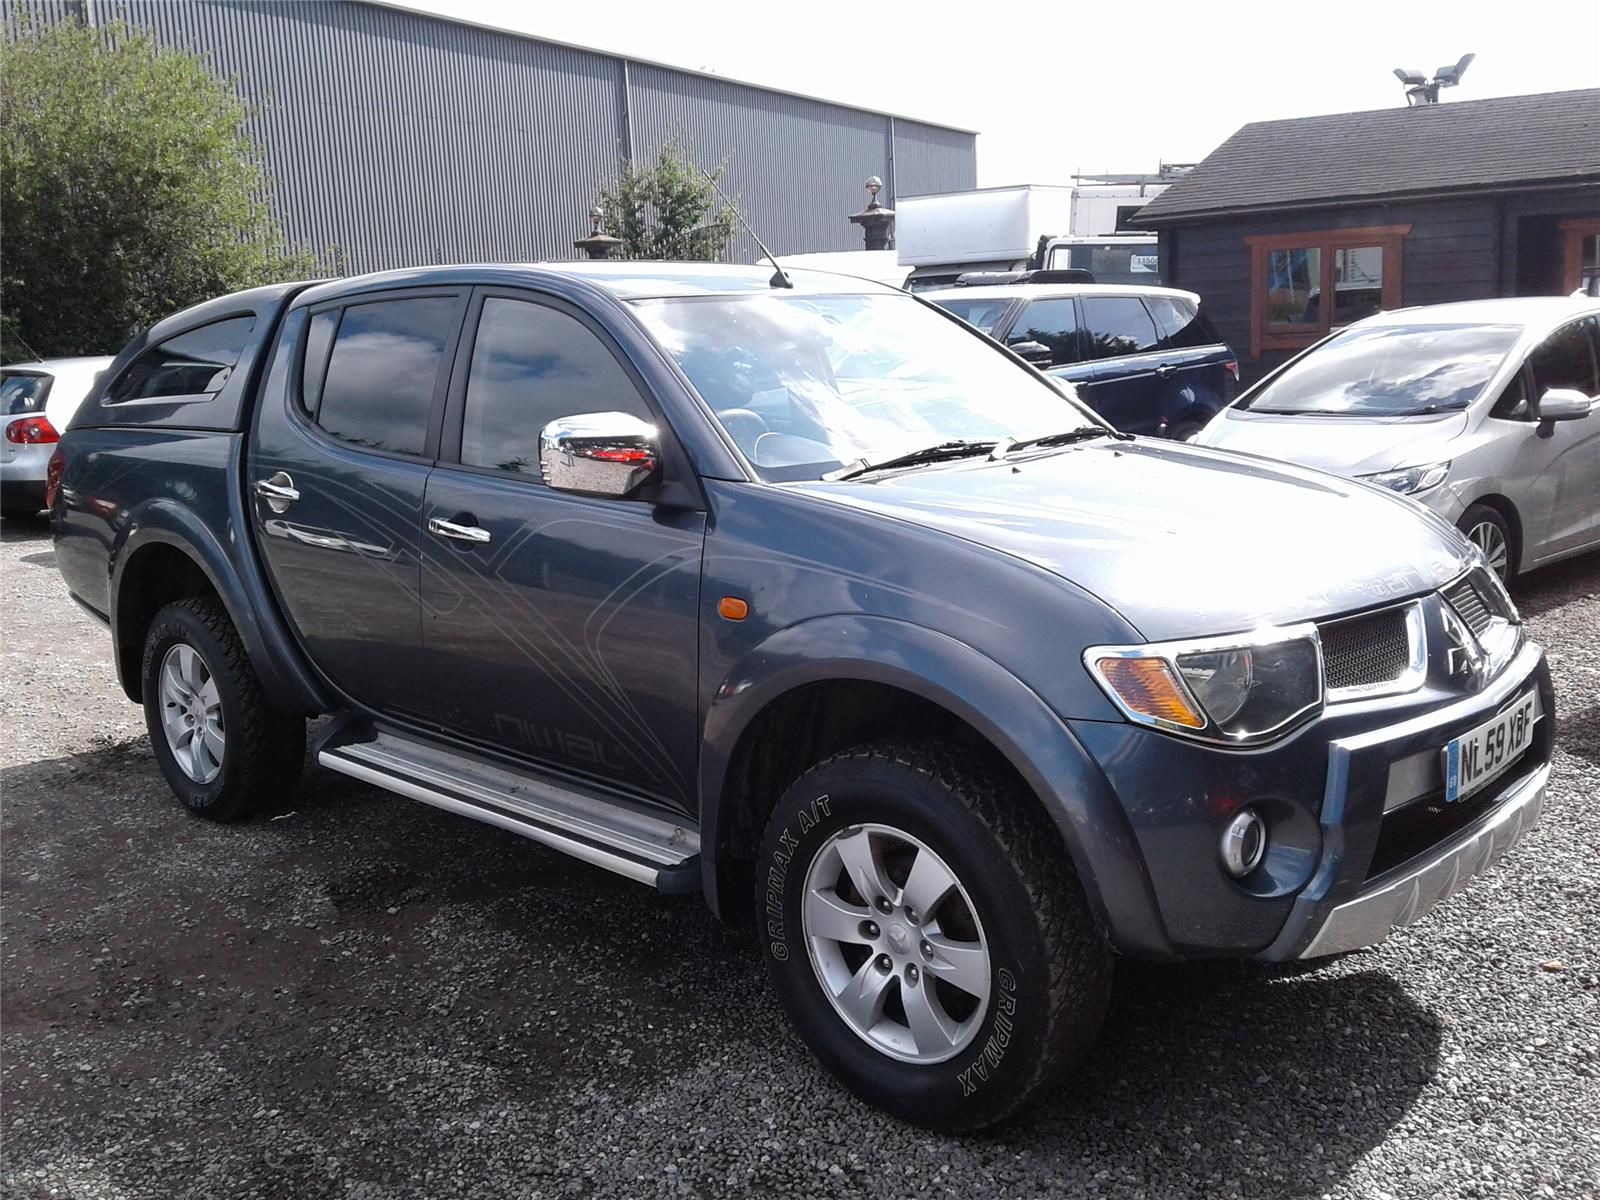 2009 Mitsubishi L200 Animal Double Cab 2477 Diesel Manual 5 Speed Pick-Up